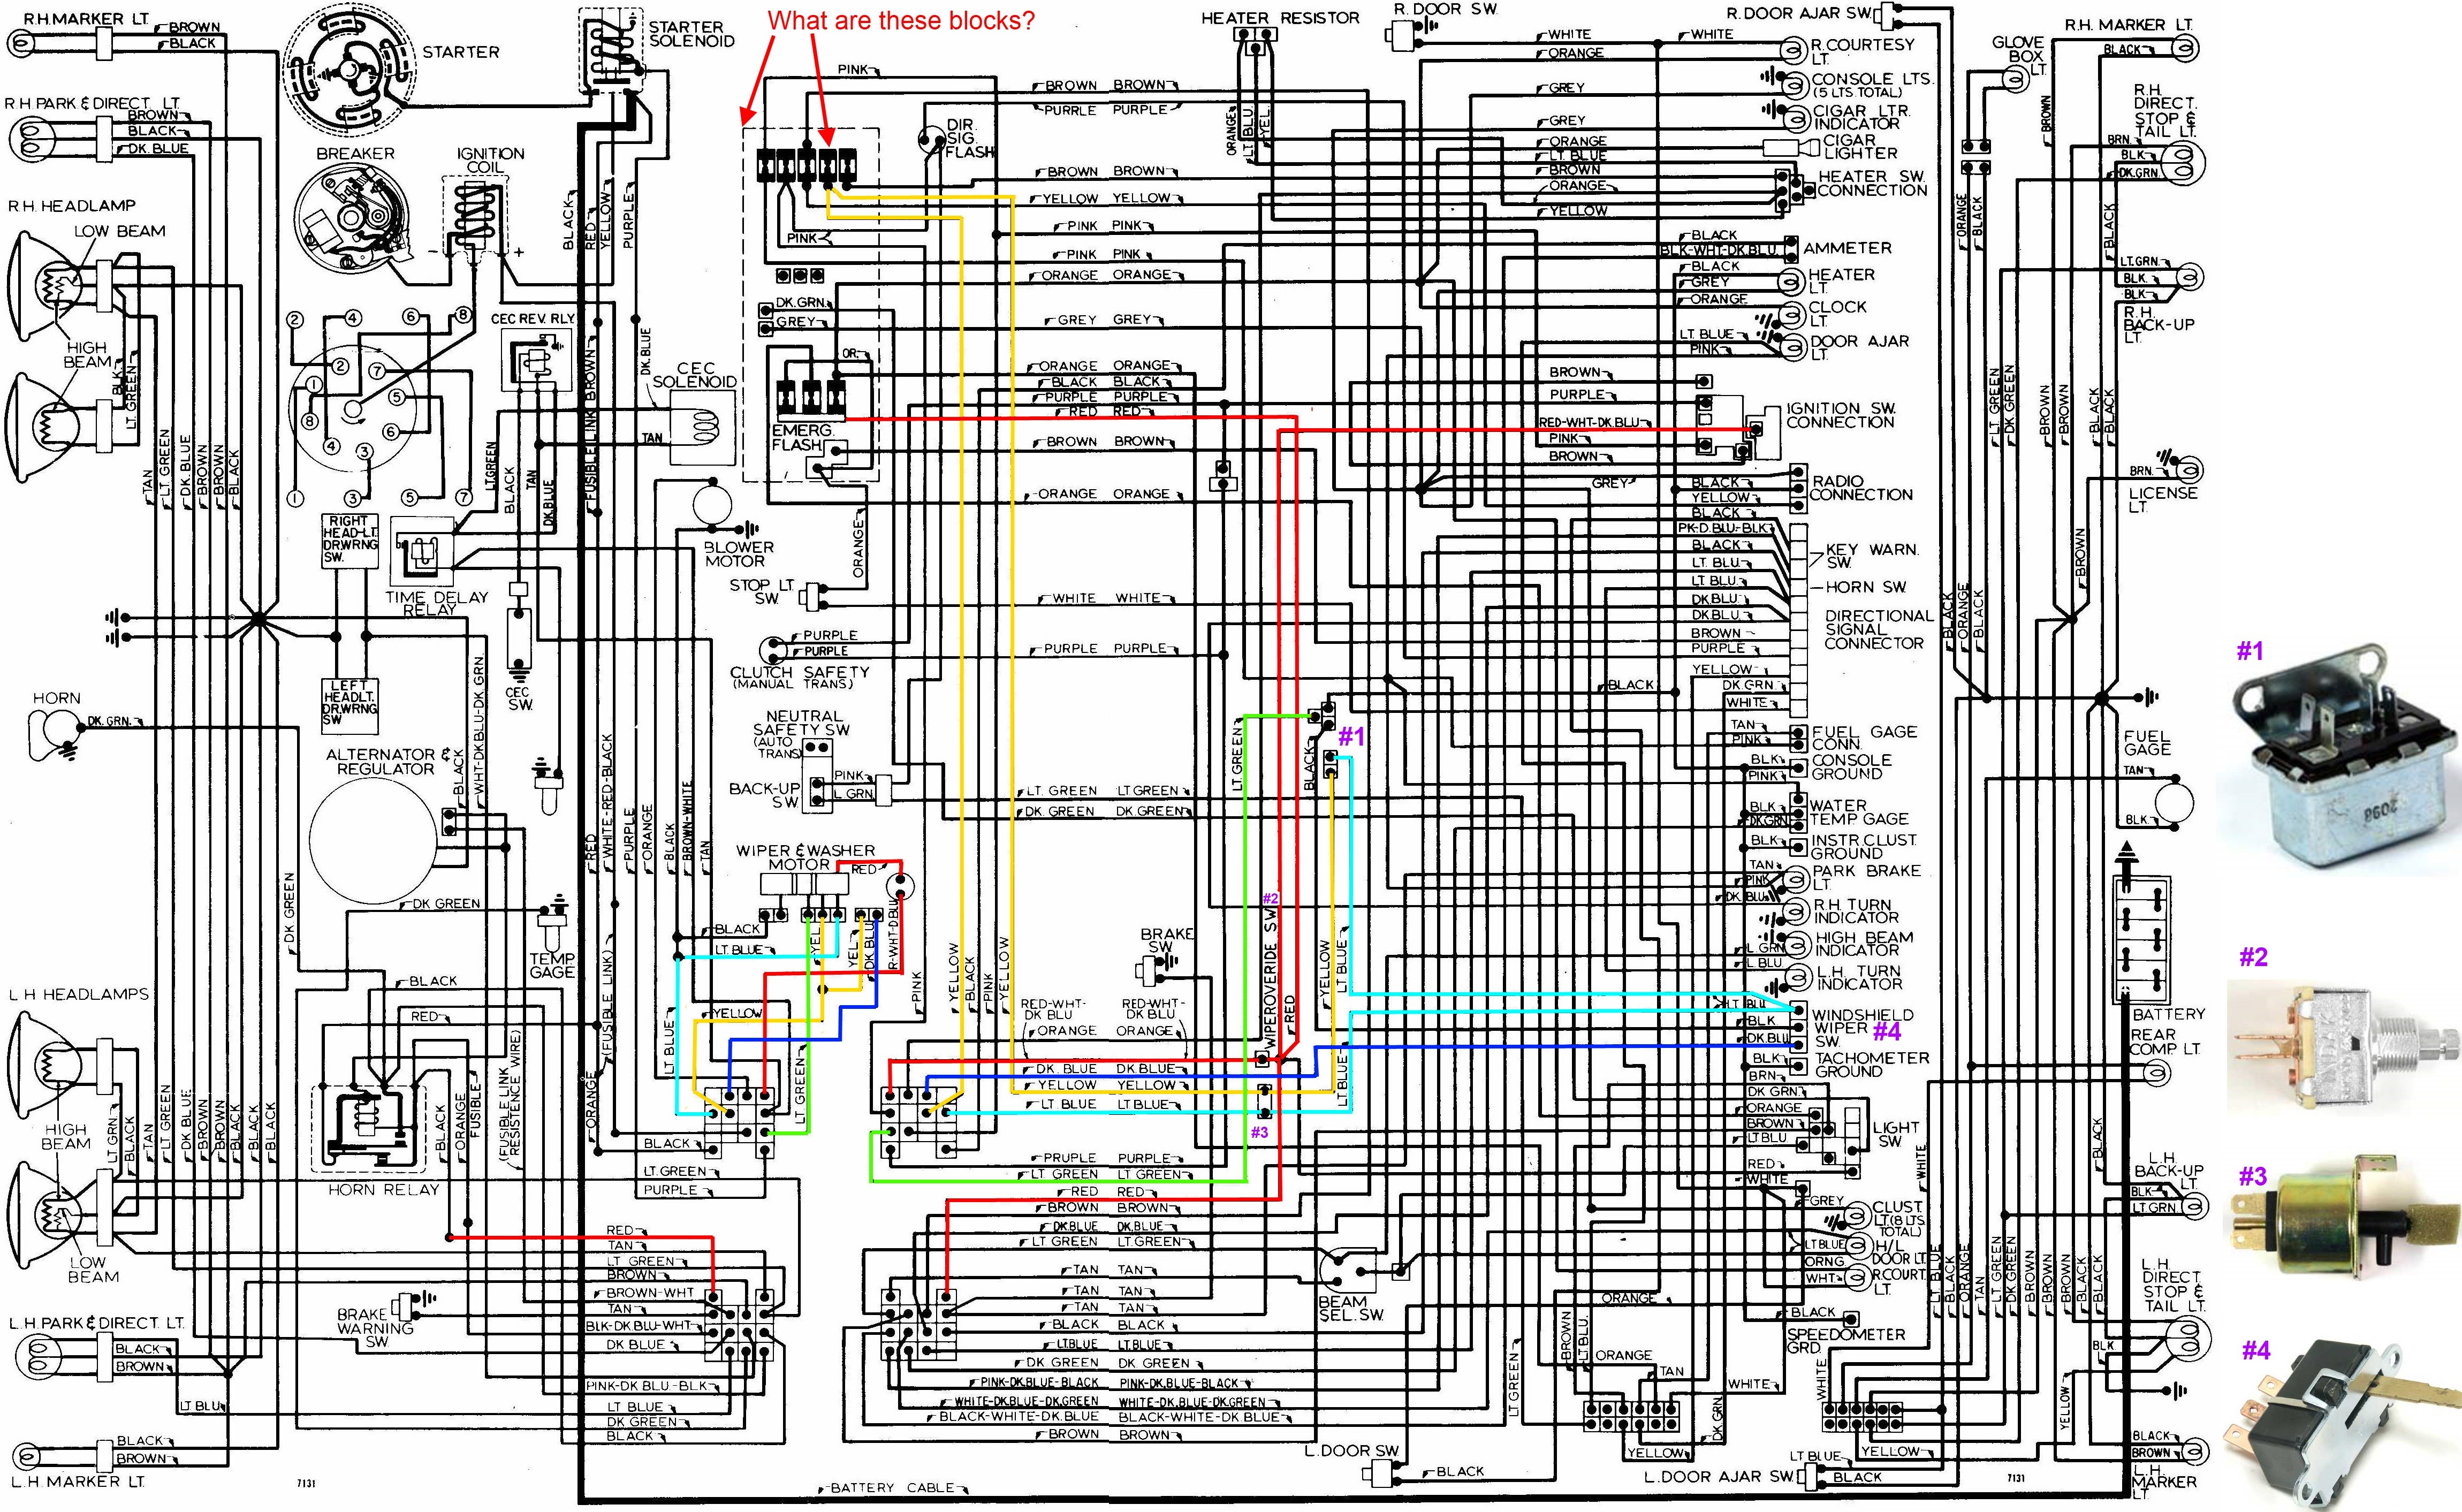 1971 Chevelle Wiring Diagram 68 Corvette Wiring Harness Diagram Wiring Diagram Week Of 1971 Chevelle Wiring Diagram 1971 Chevy 4×4 Wiring Diagram Wiring Diagram Datasource